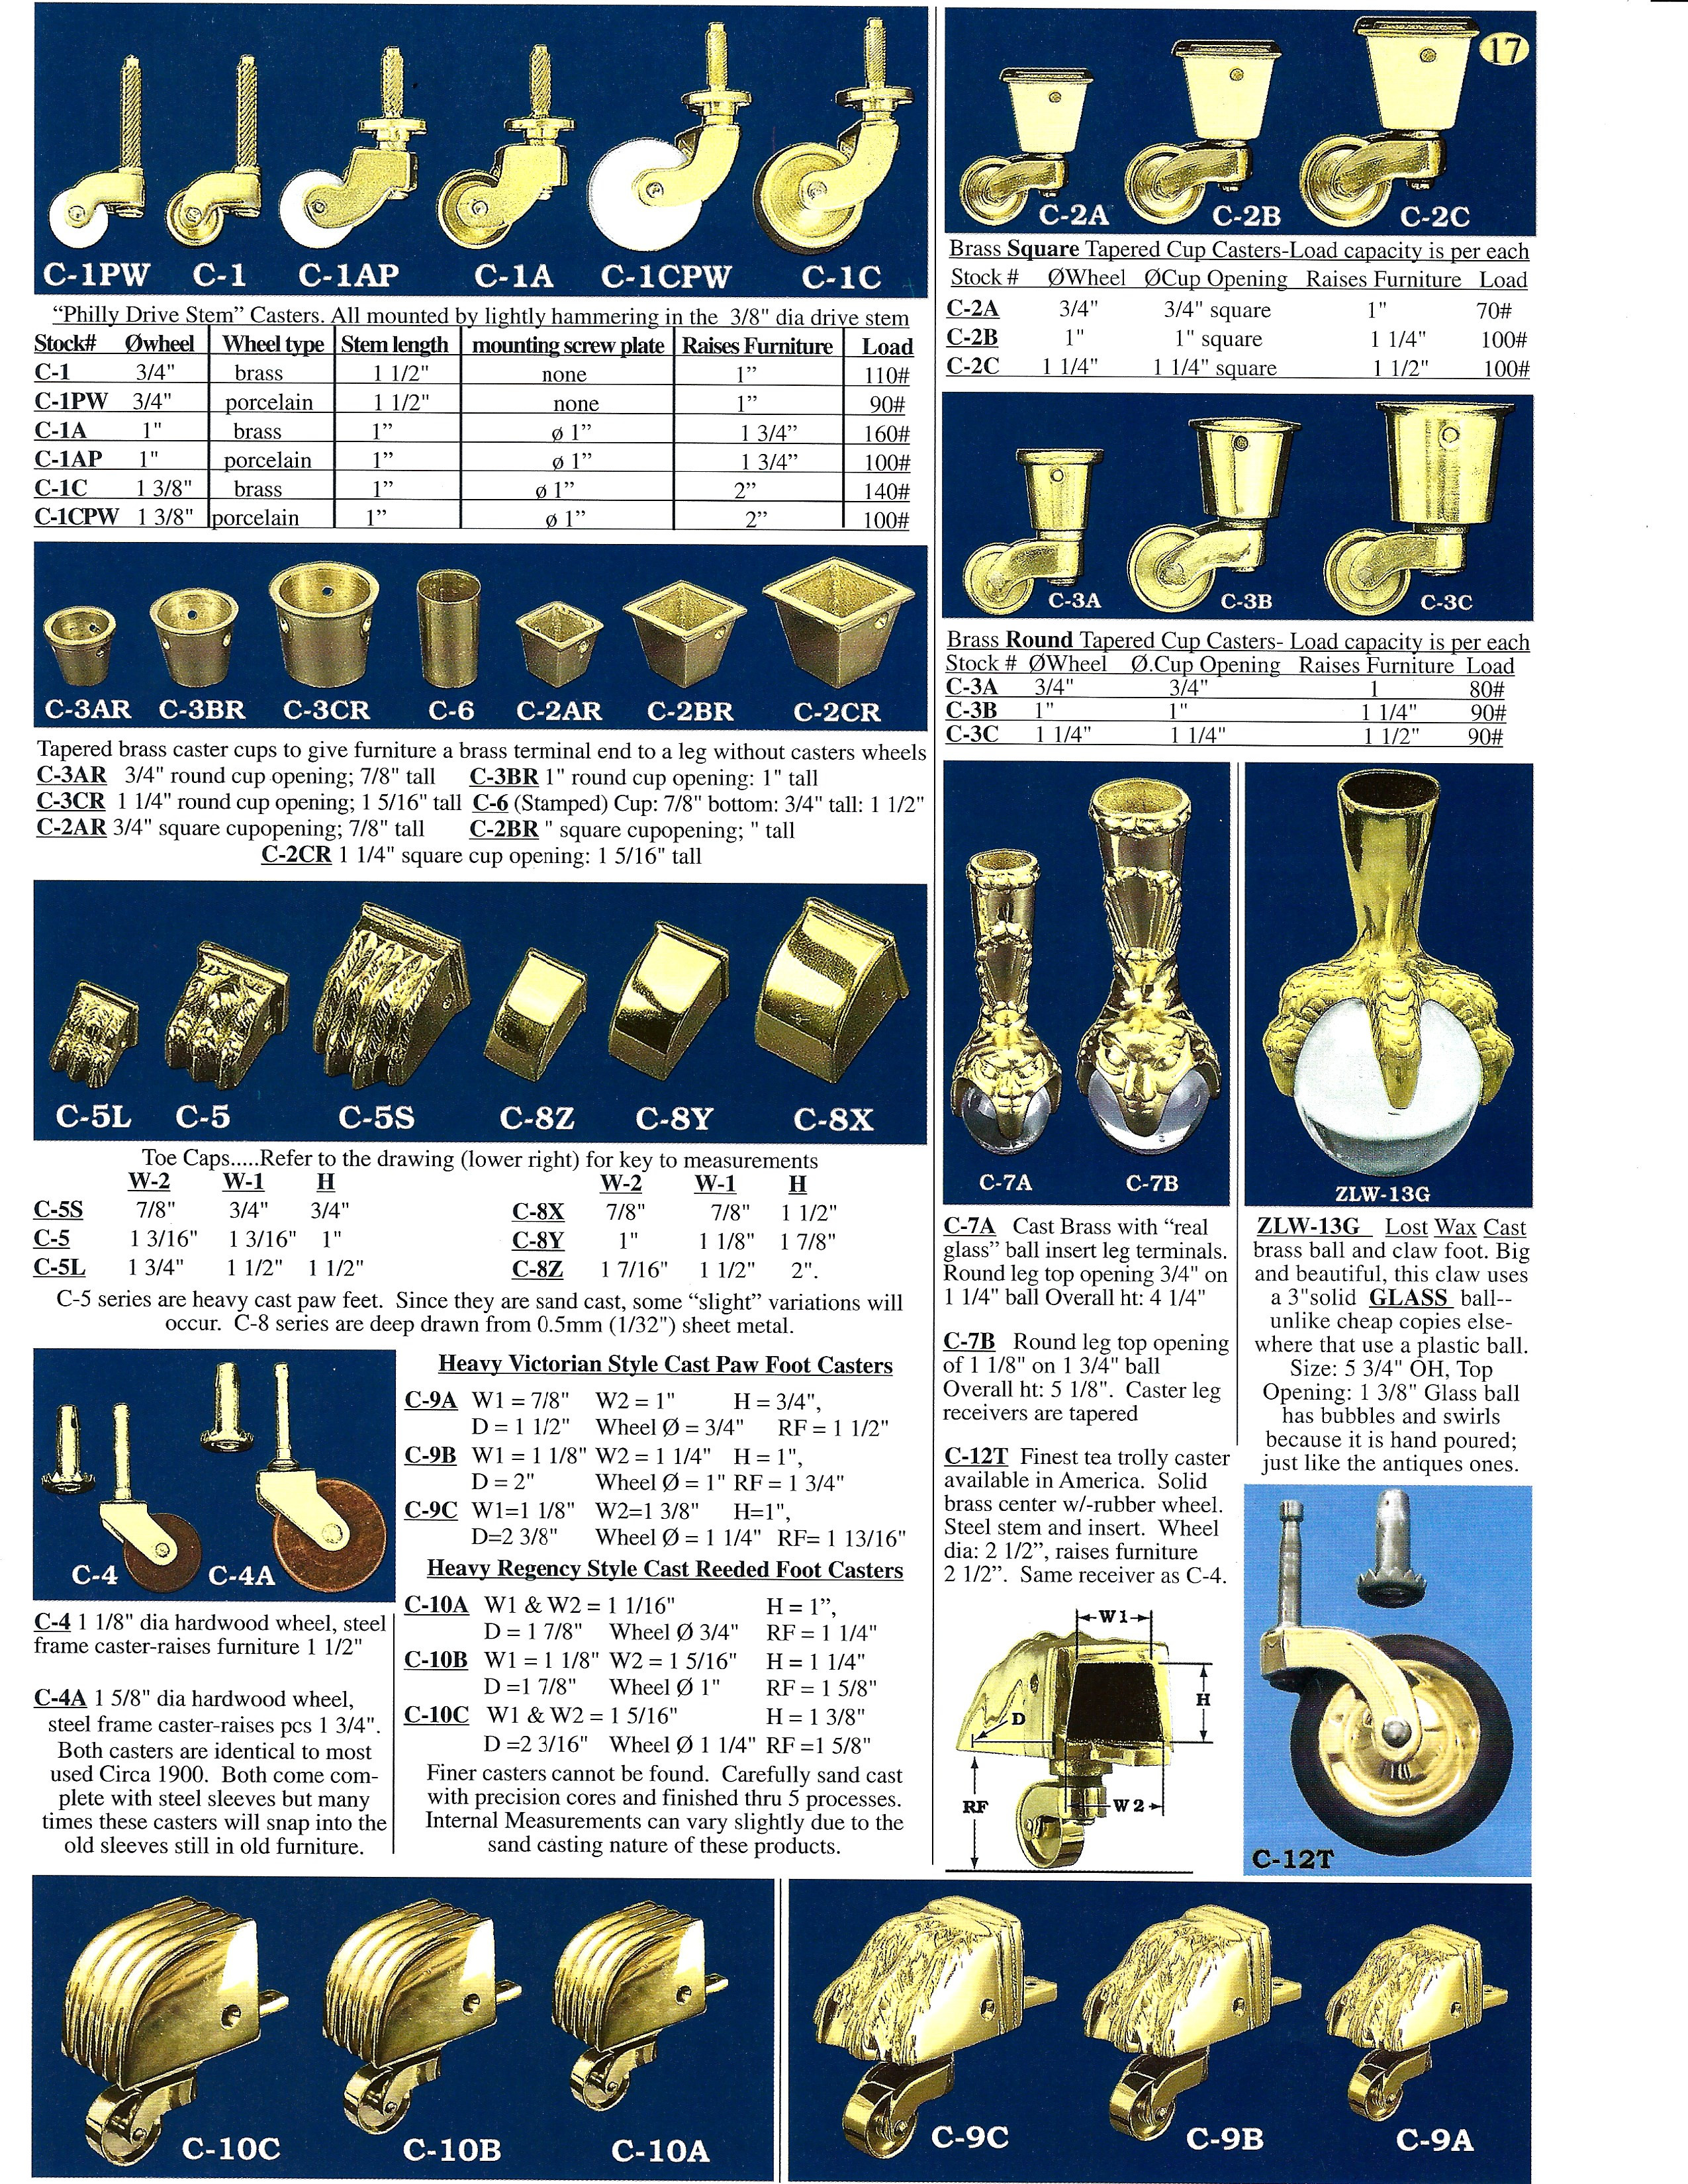 Catalog page 17